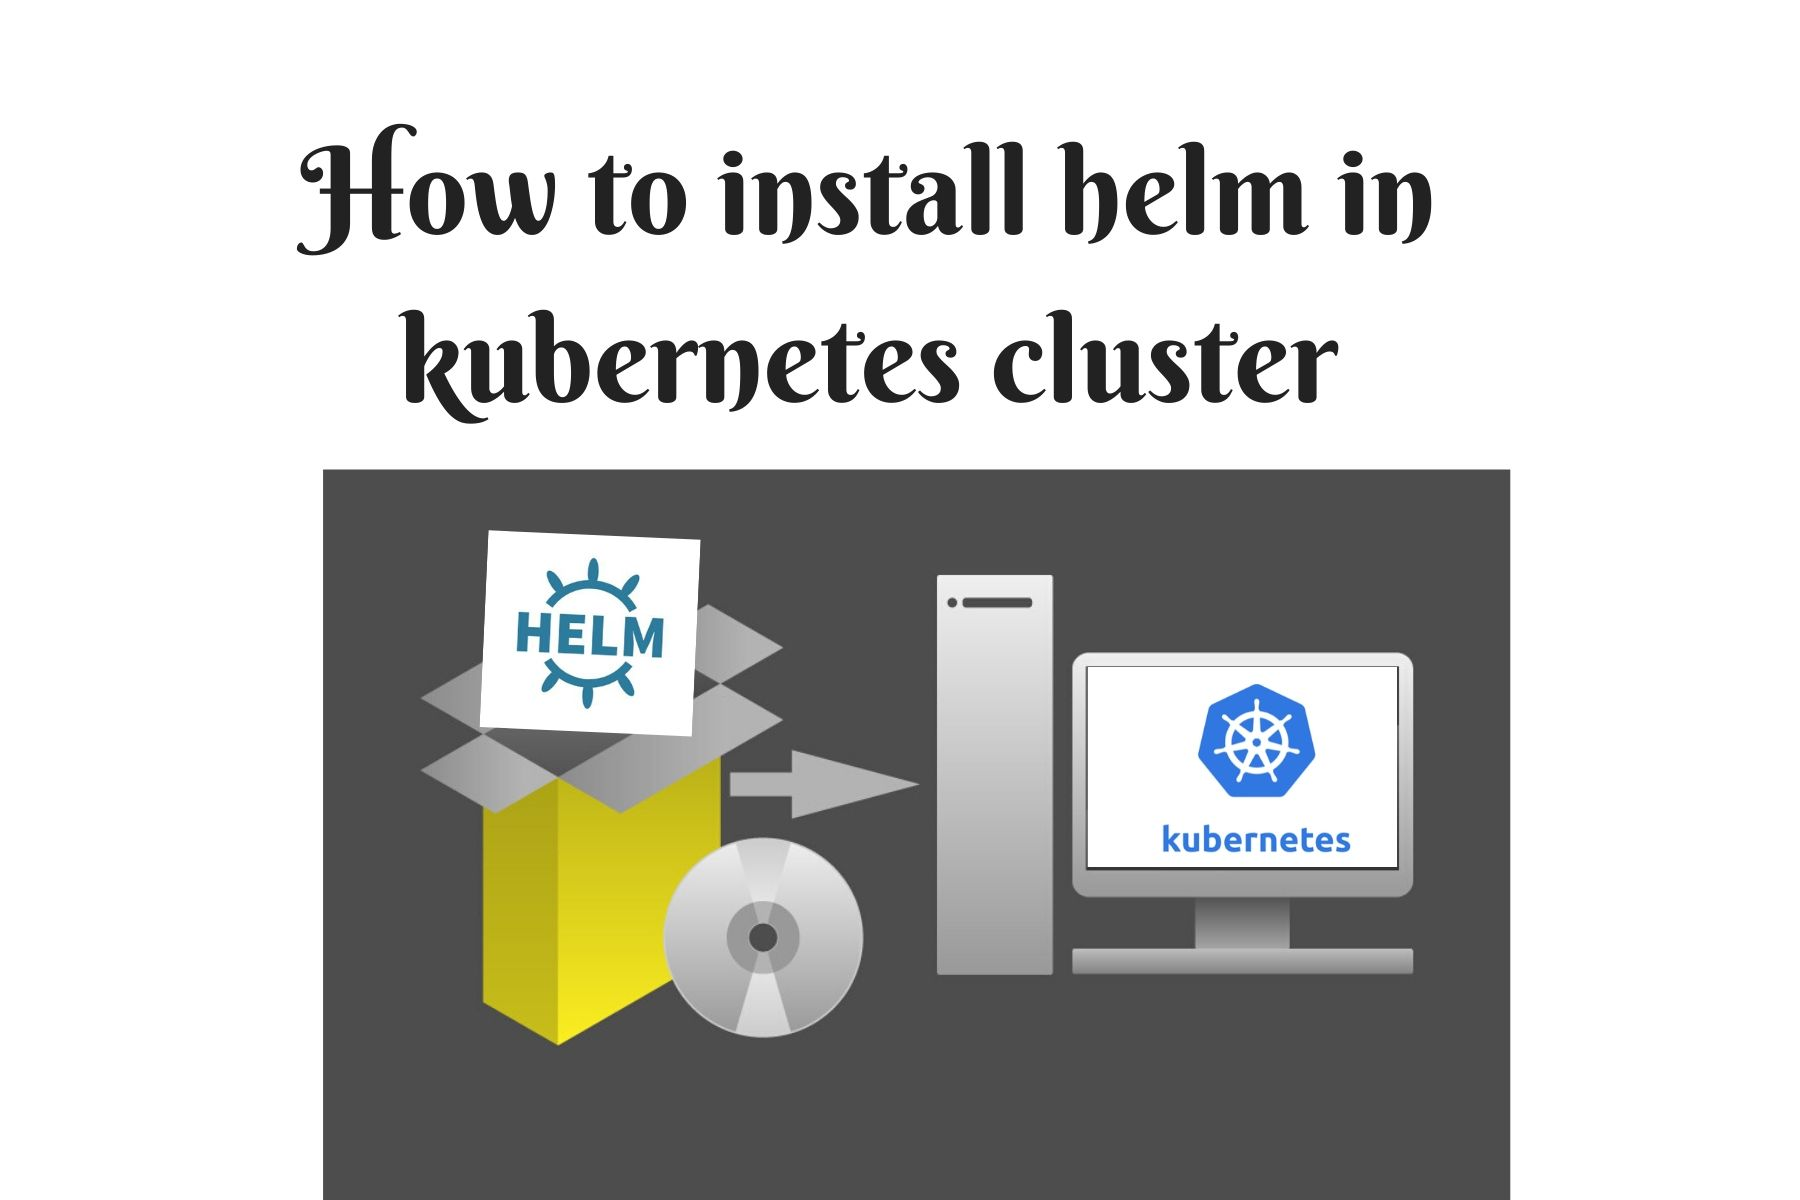 How to install helm in kubernetes cluster